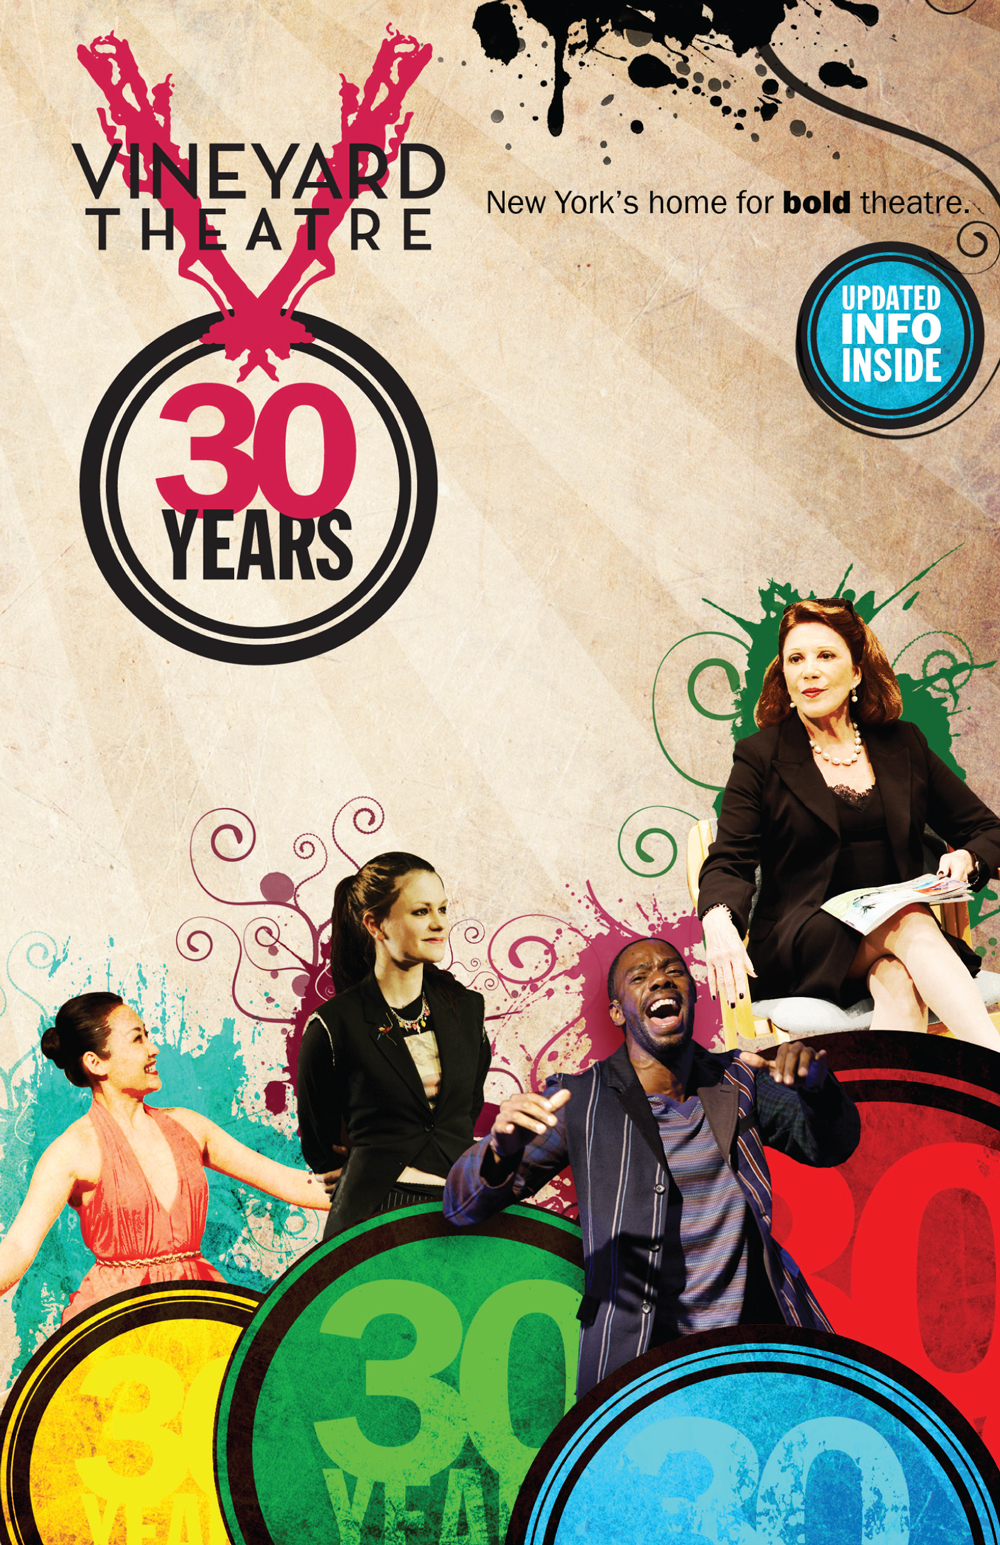 Vineyard Theatre 30th Anniversary brochure cover